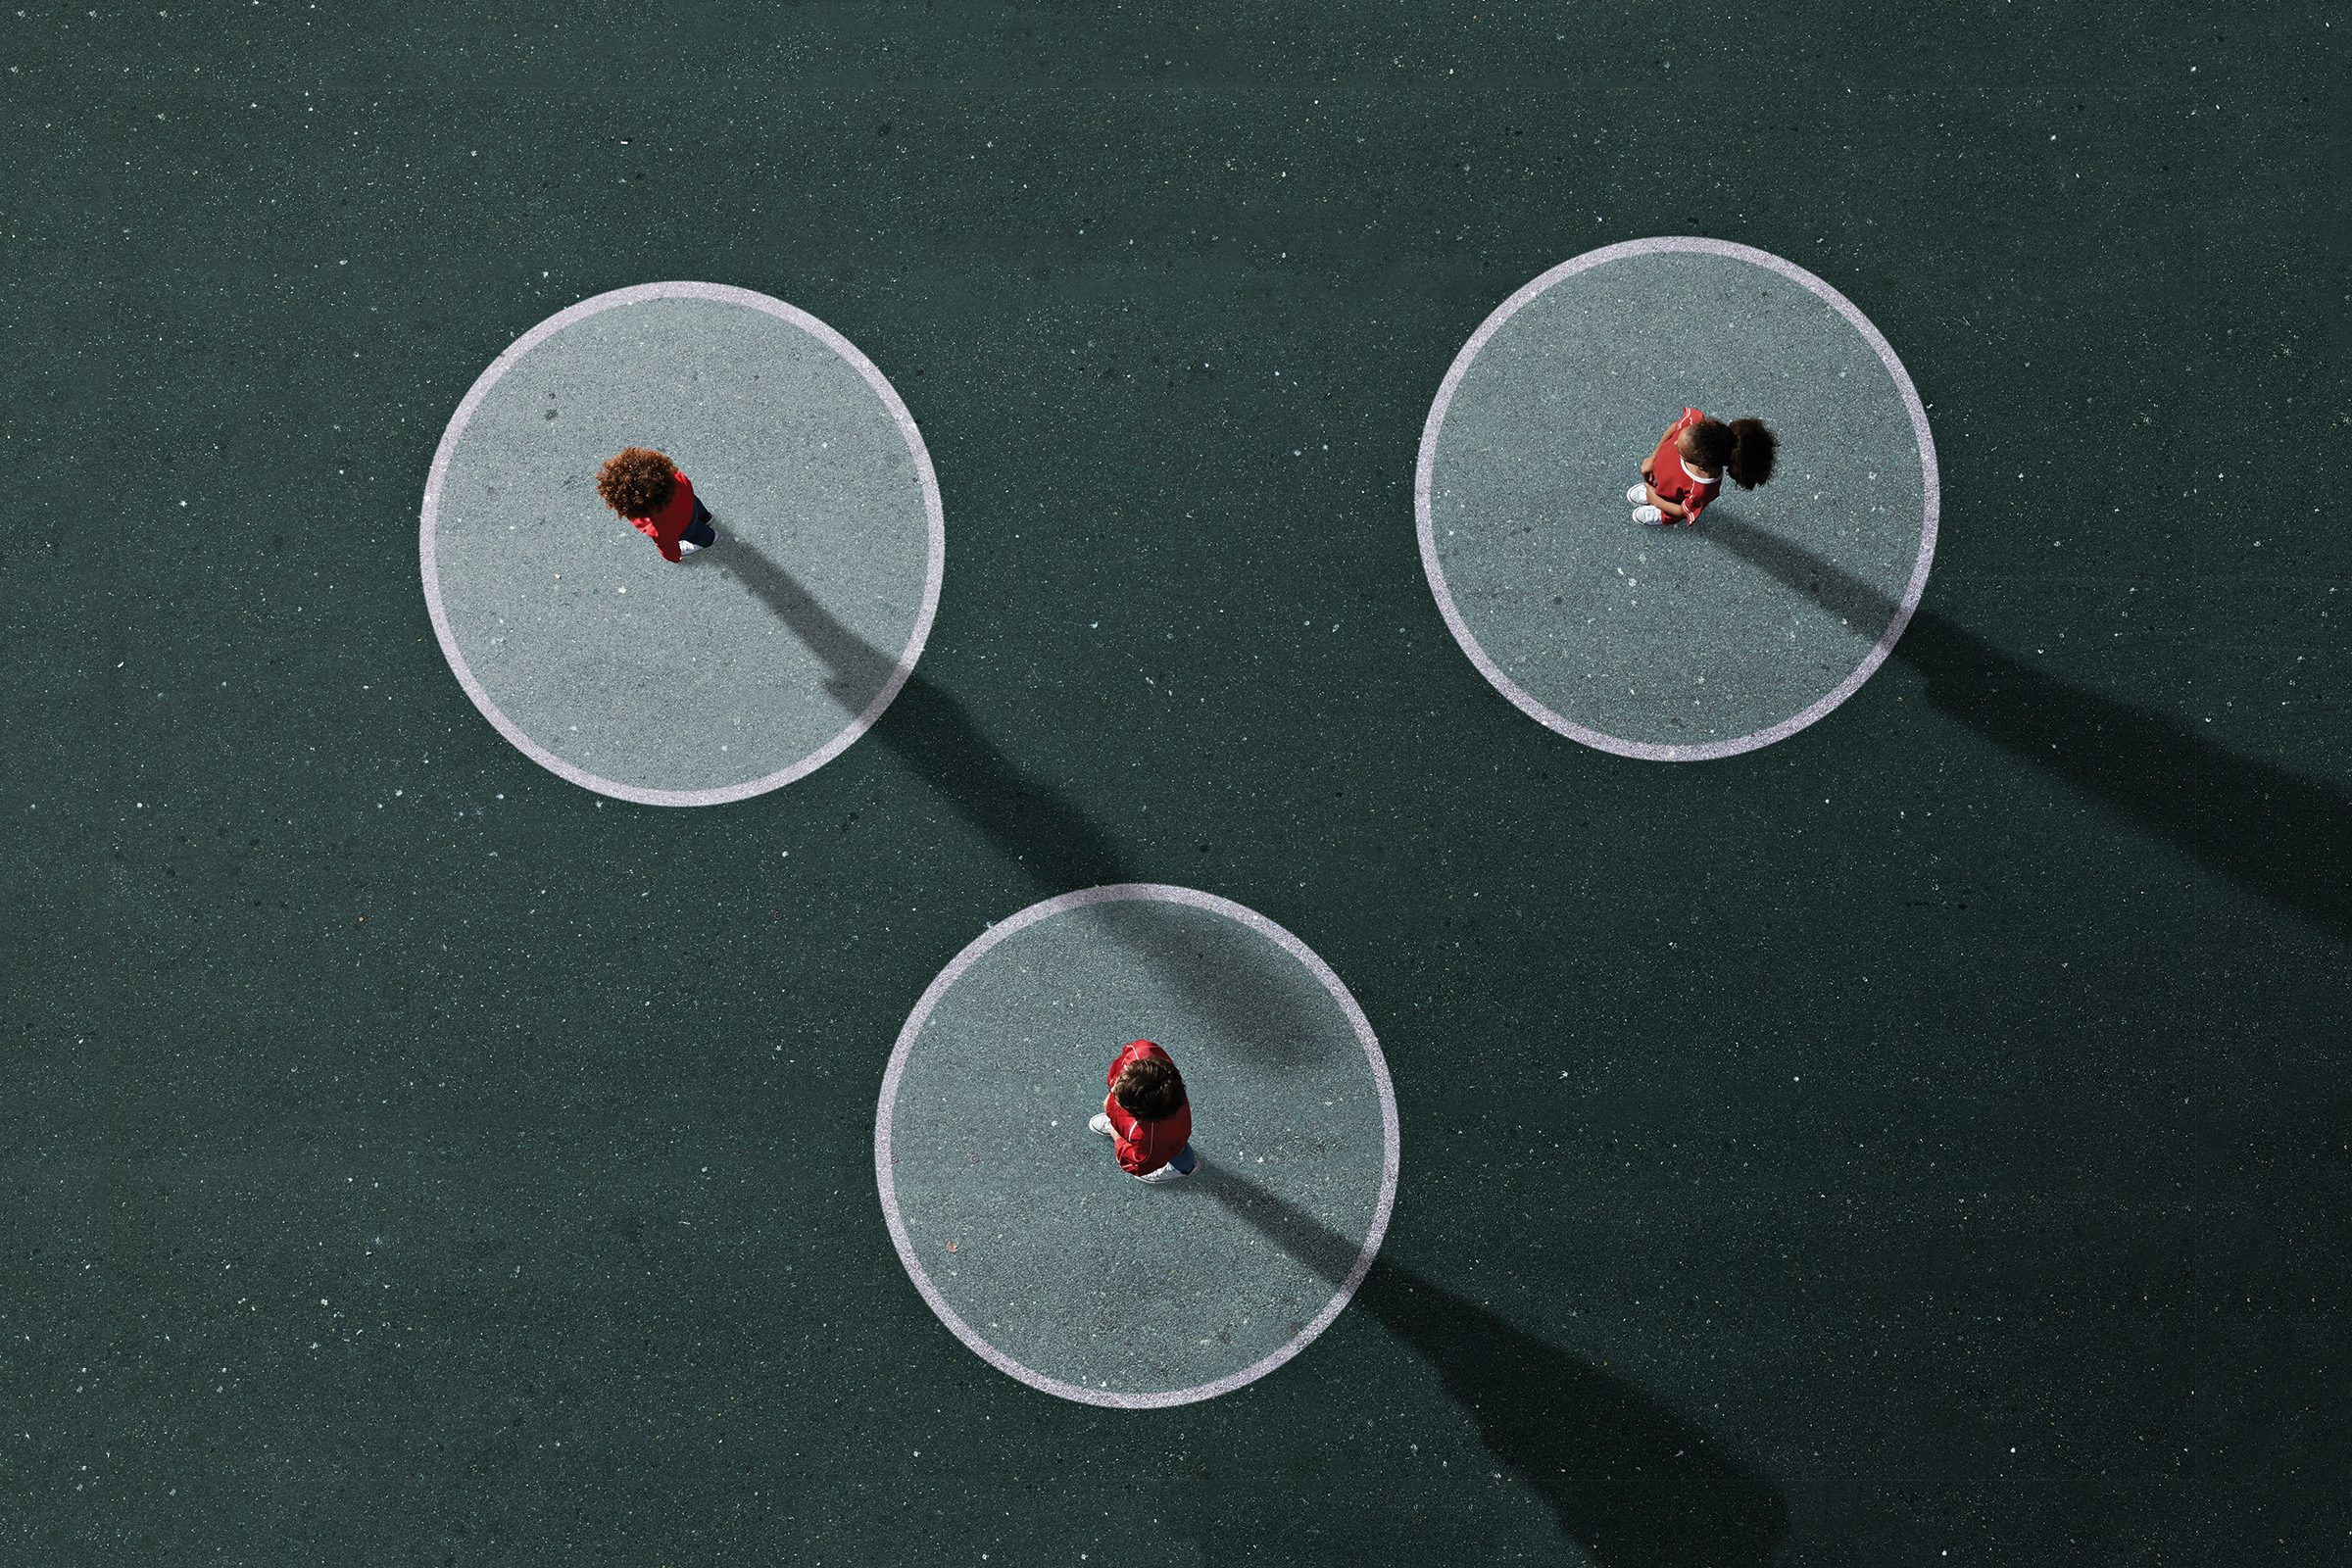 3 people standing in separate circles